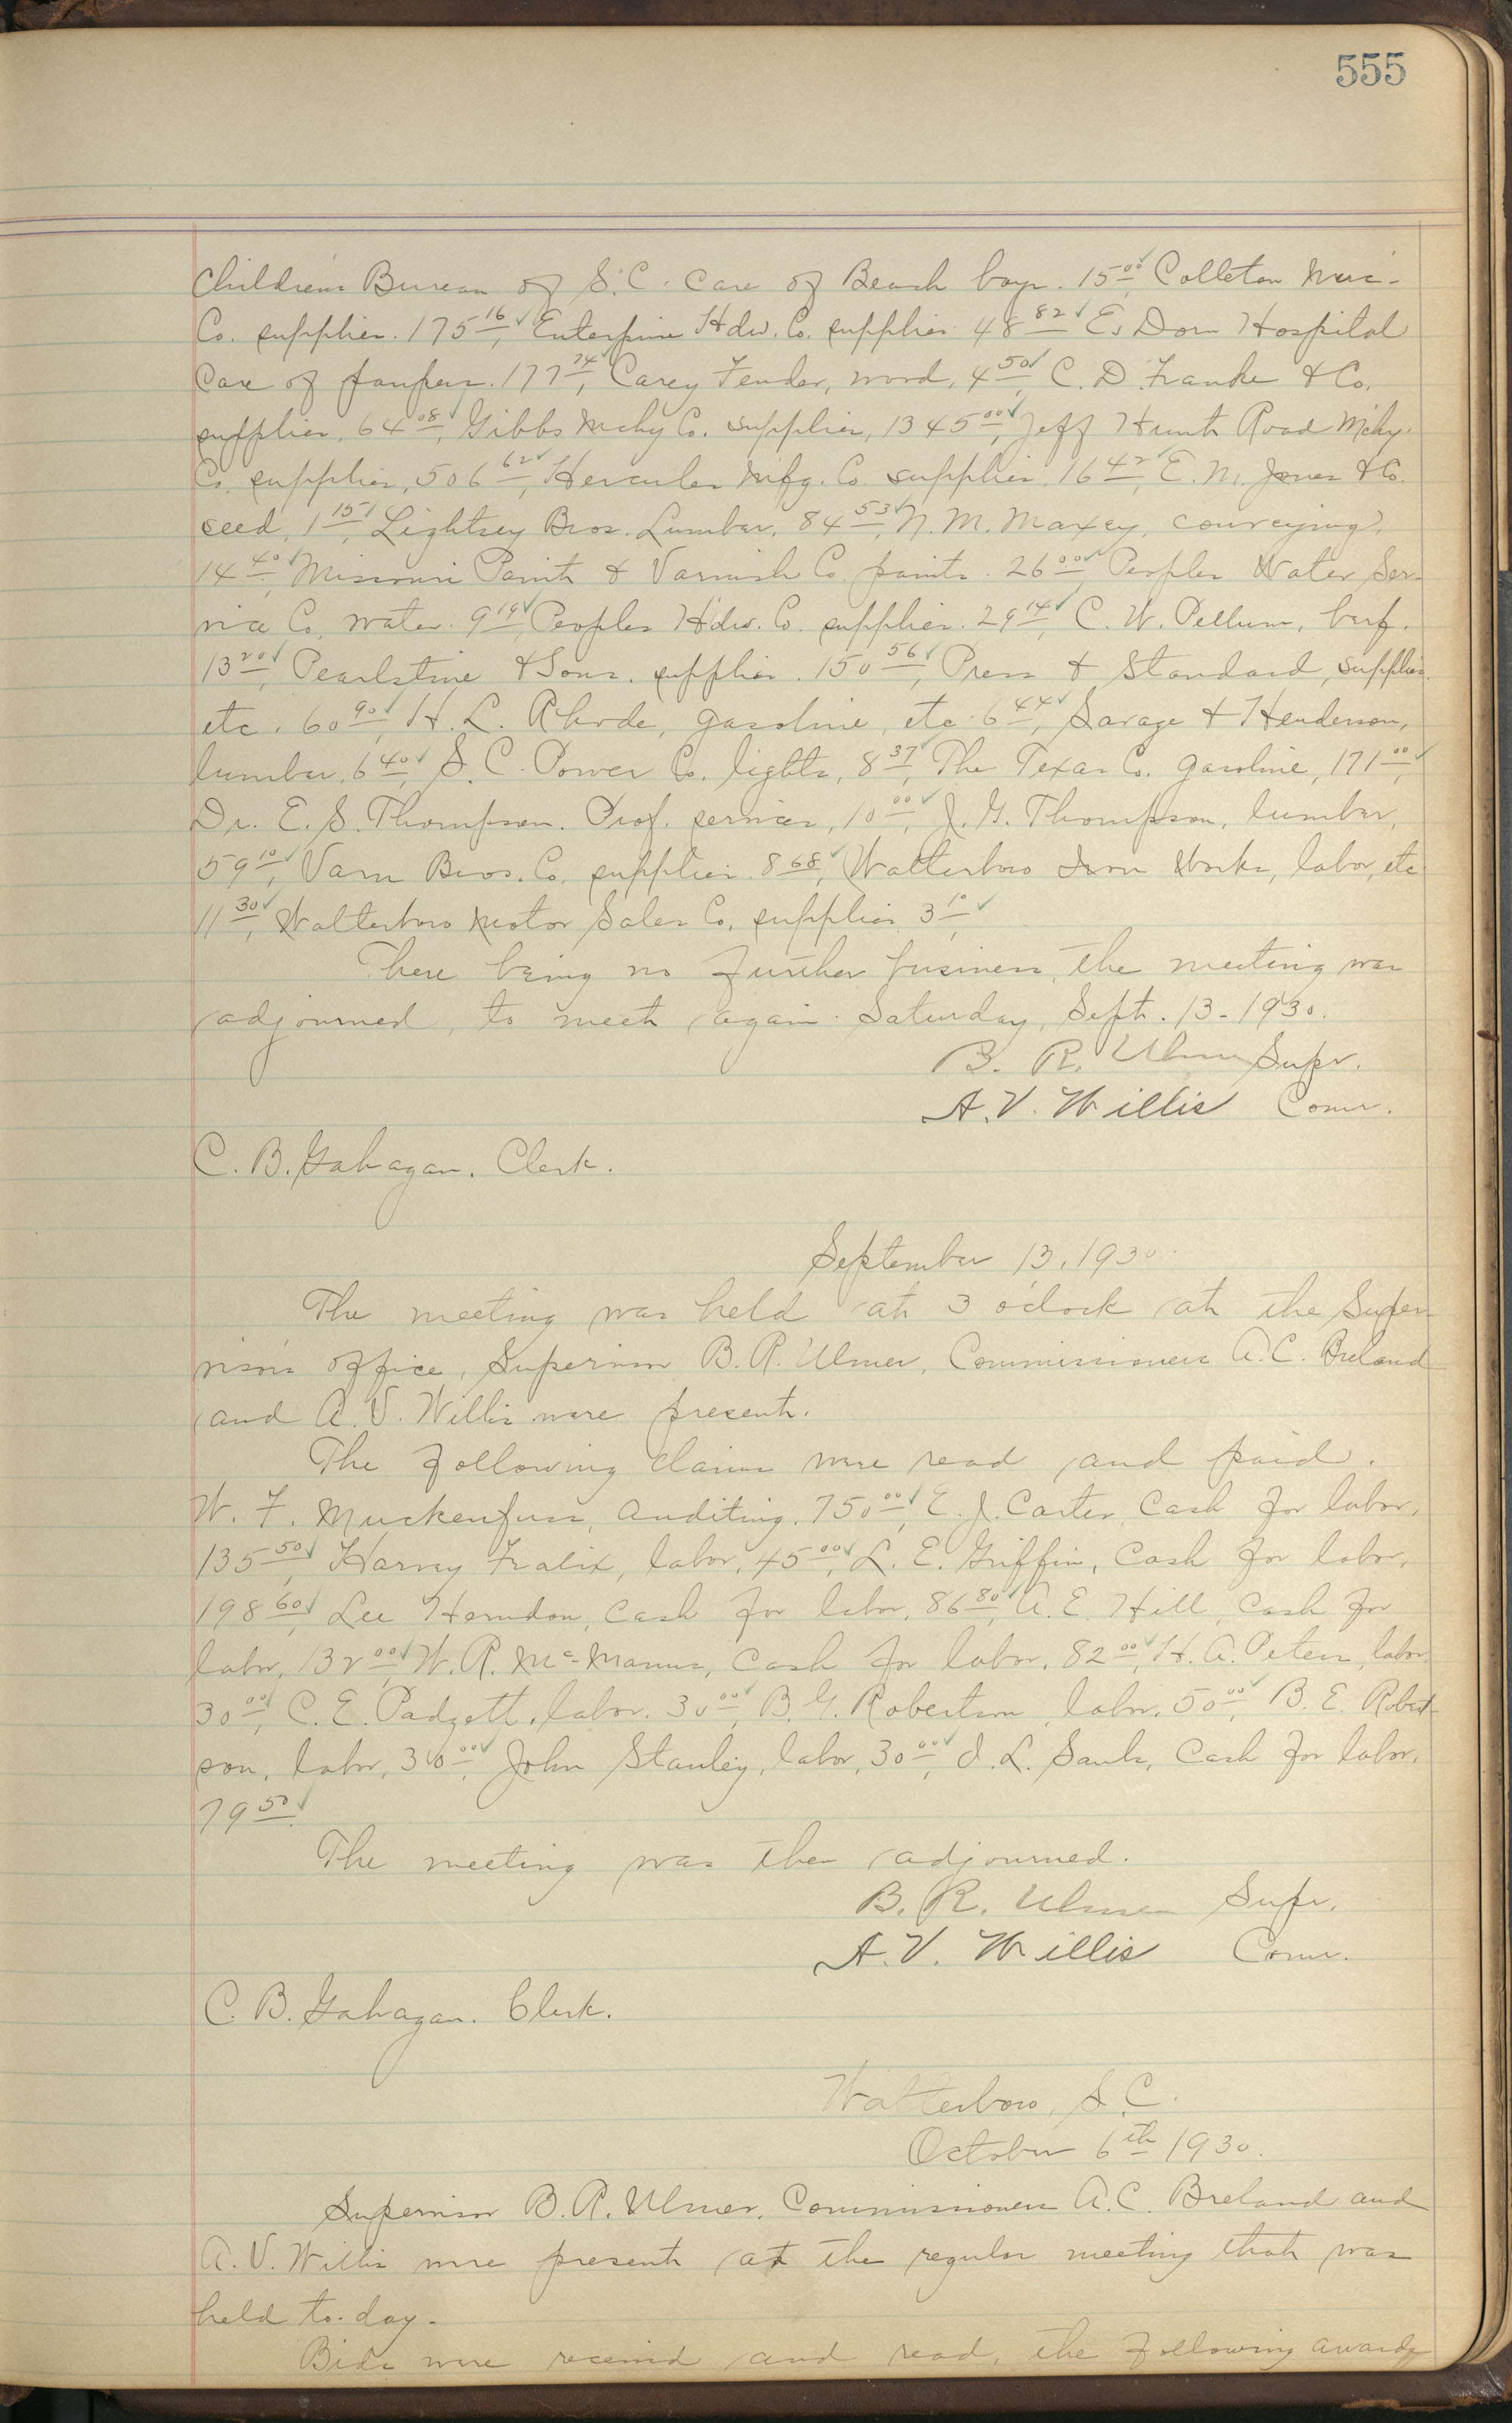 Colleton County Highway Commission Ledger, Page 555